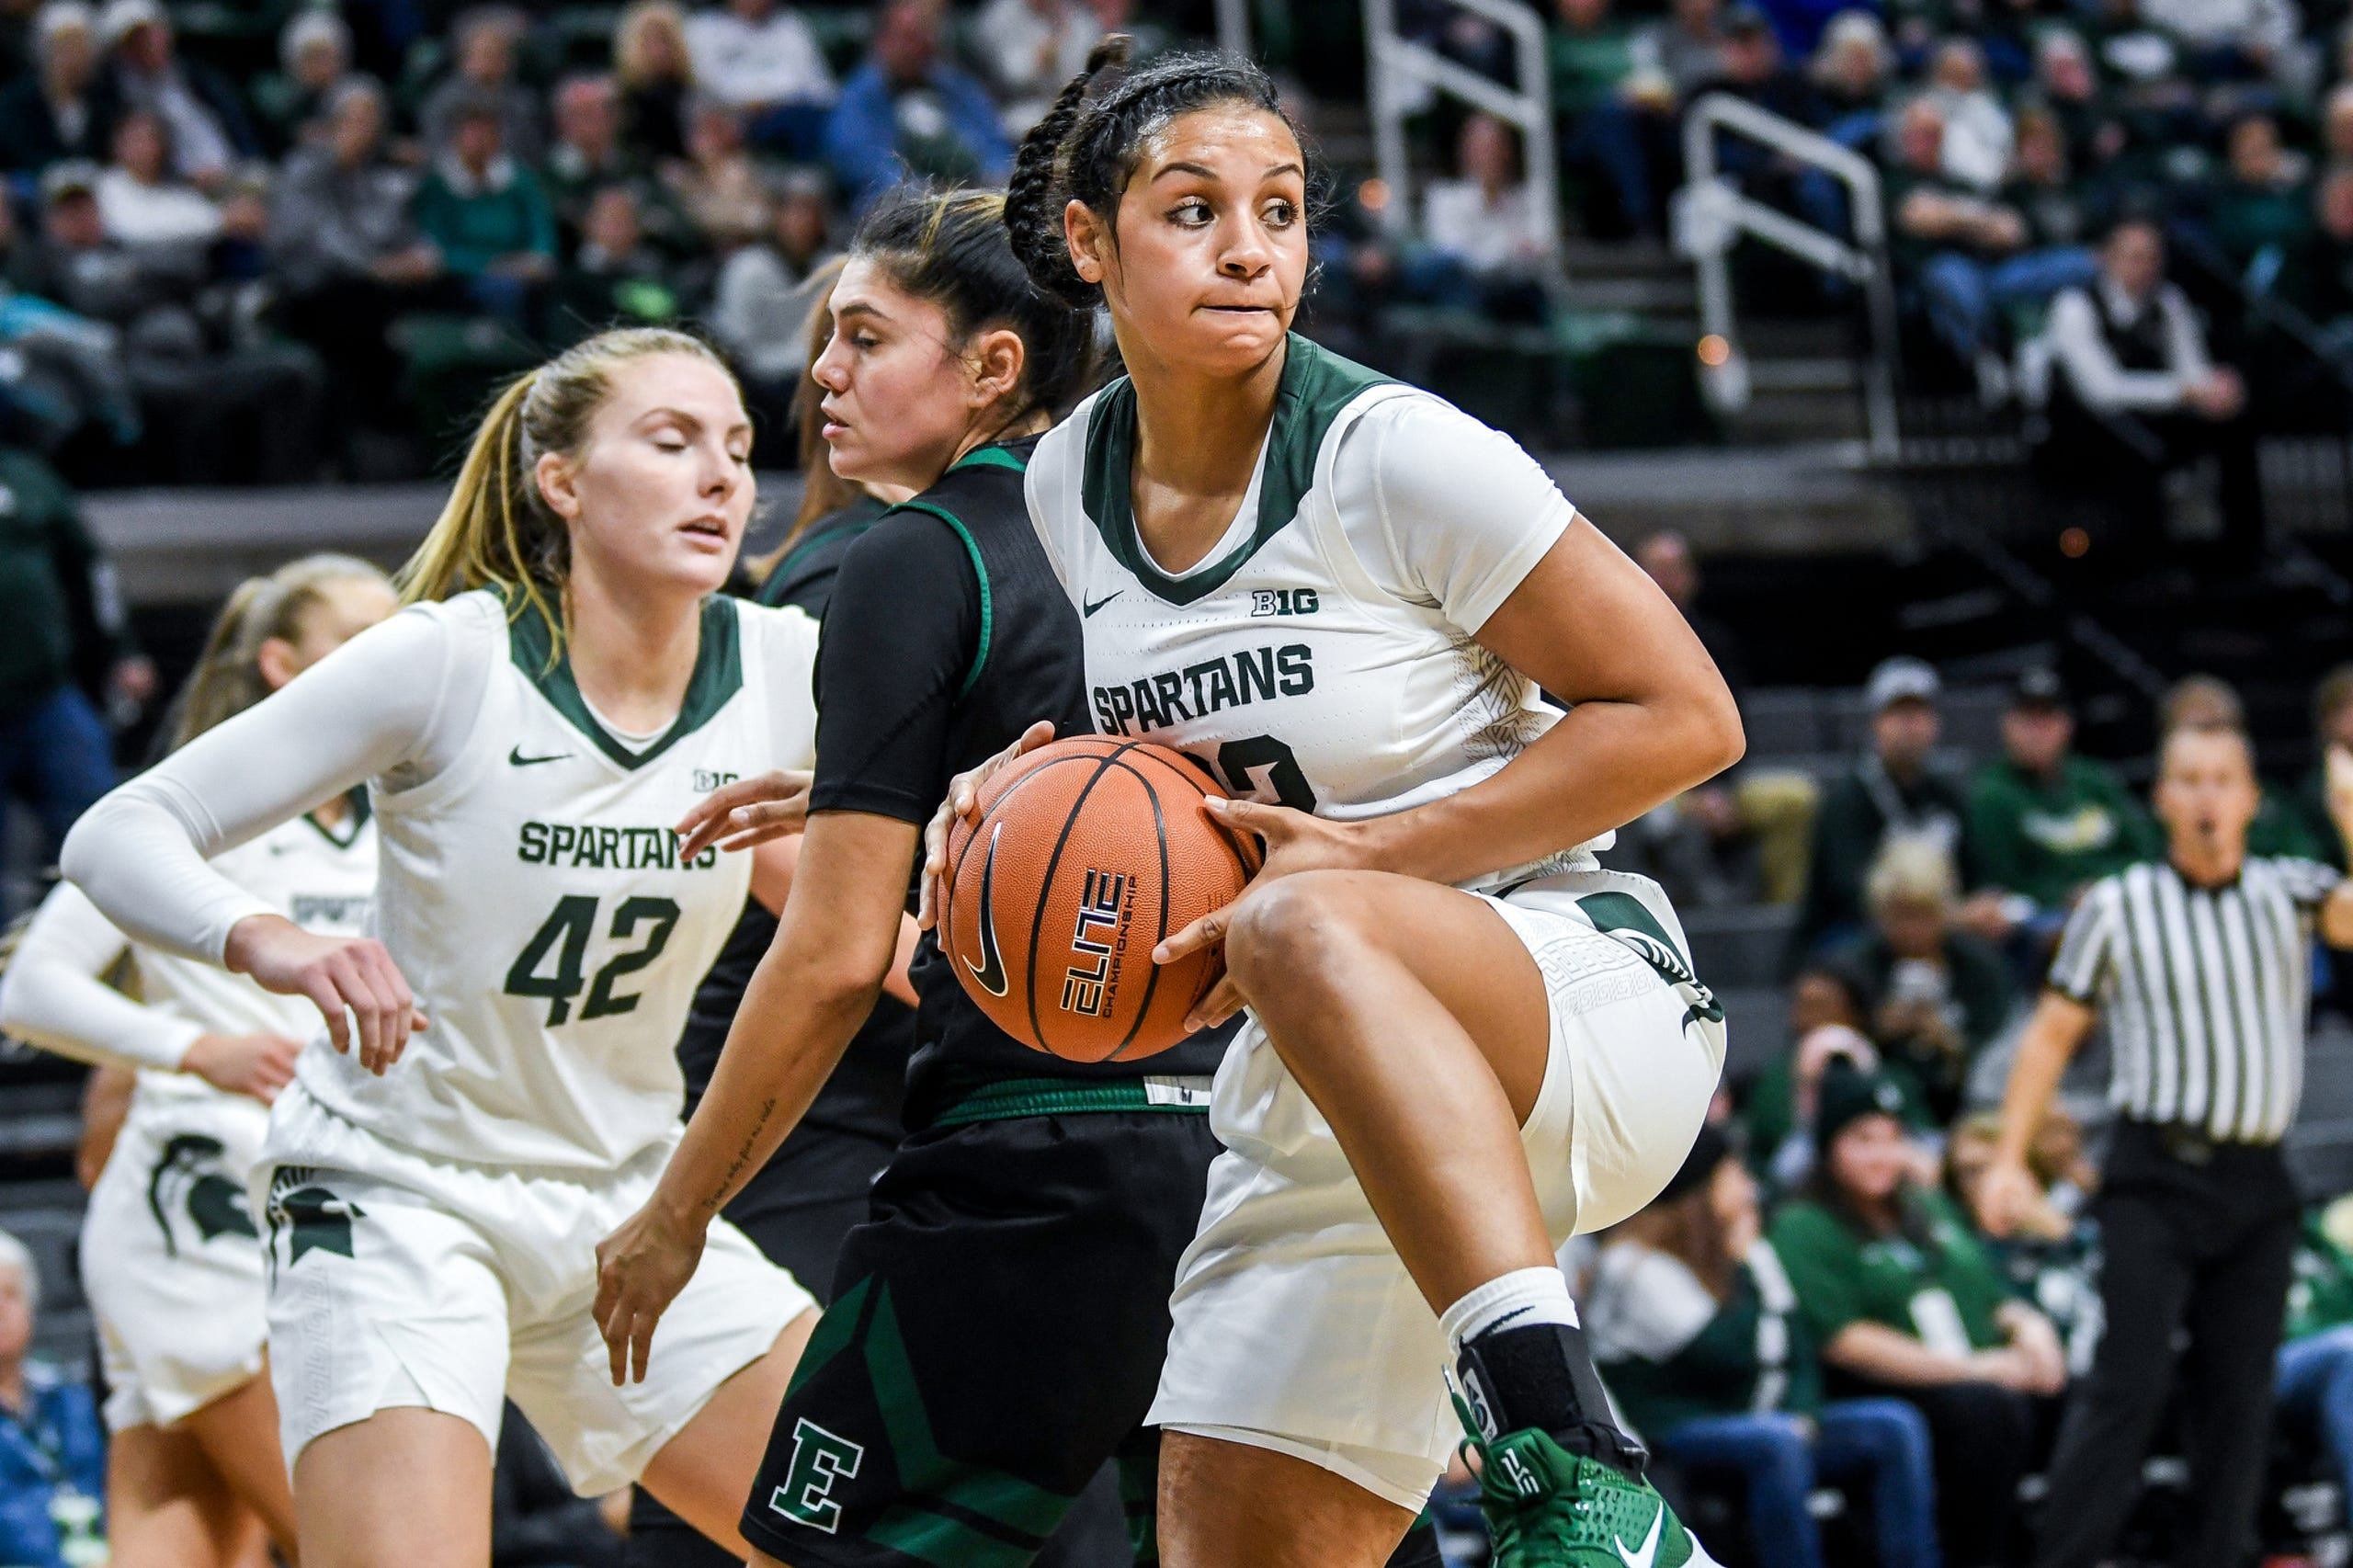 Michigan State's Moira Joiner grands a rubound during the  second quarter on Tuesday, Nov. 5, 2019, at the Breslin Center in East Lansing.